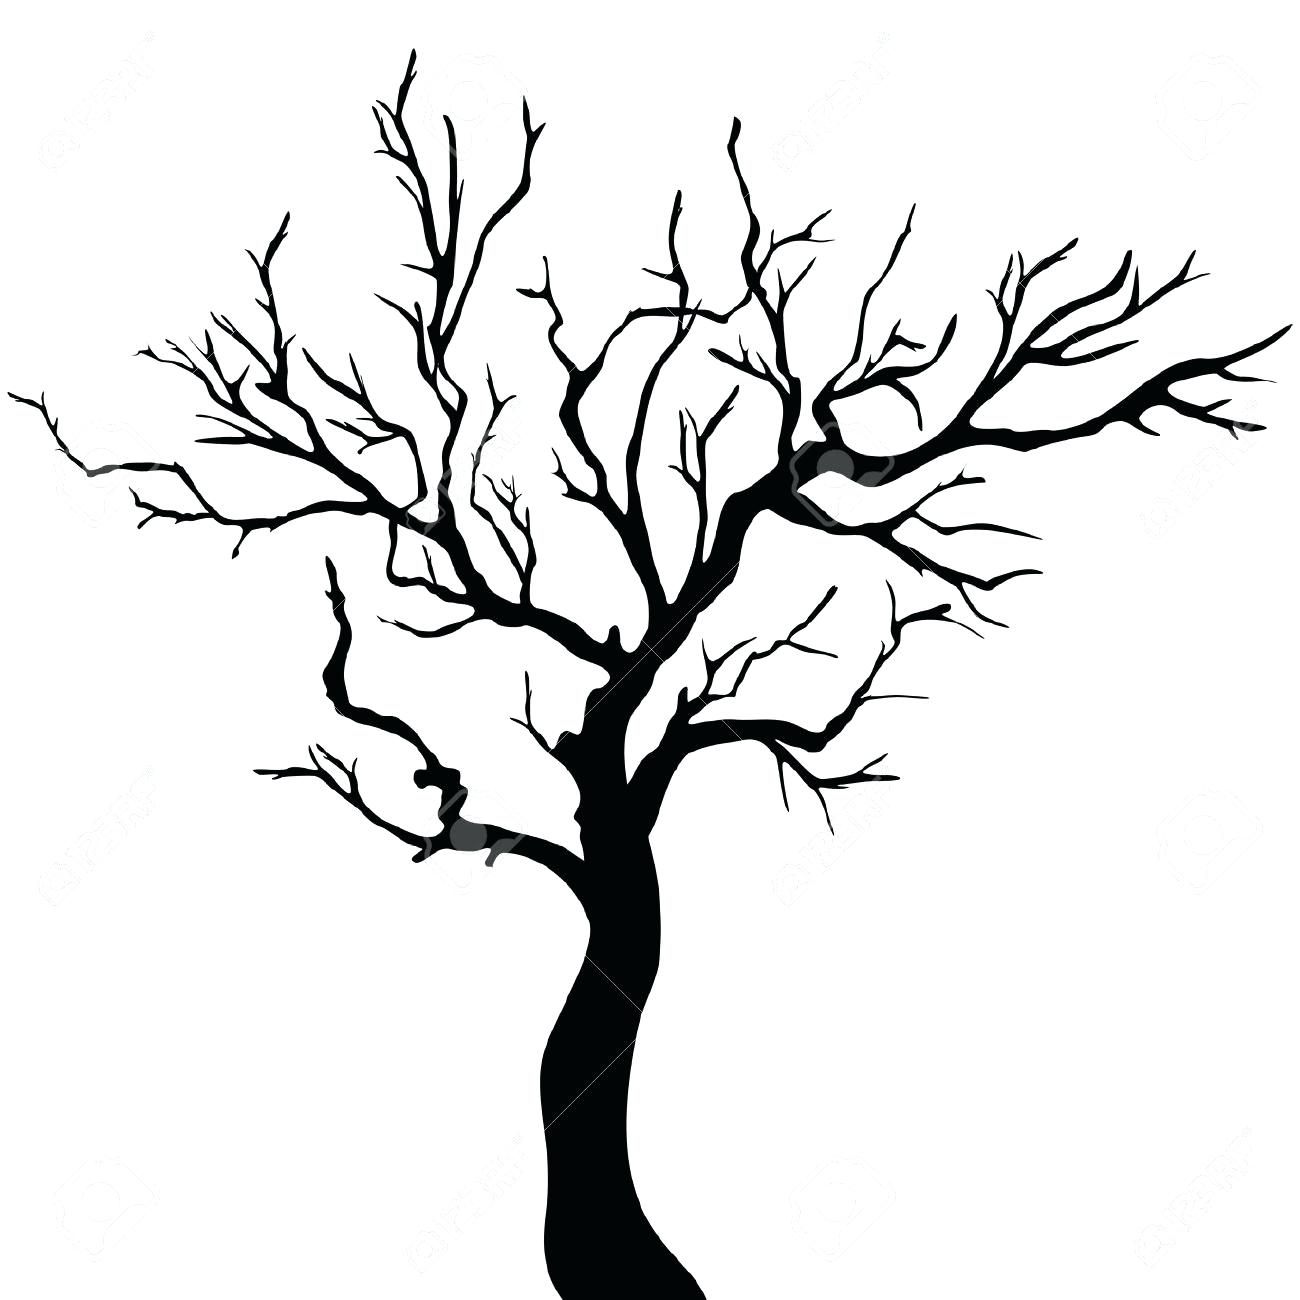 1300x1300 Tree Silhouettes Royalty Free Vectors And Stock 19 Terrific